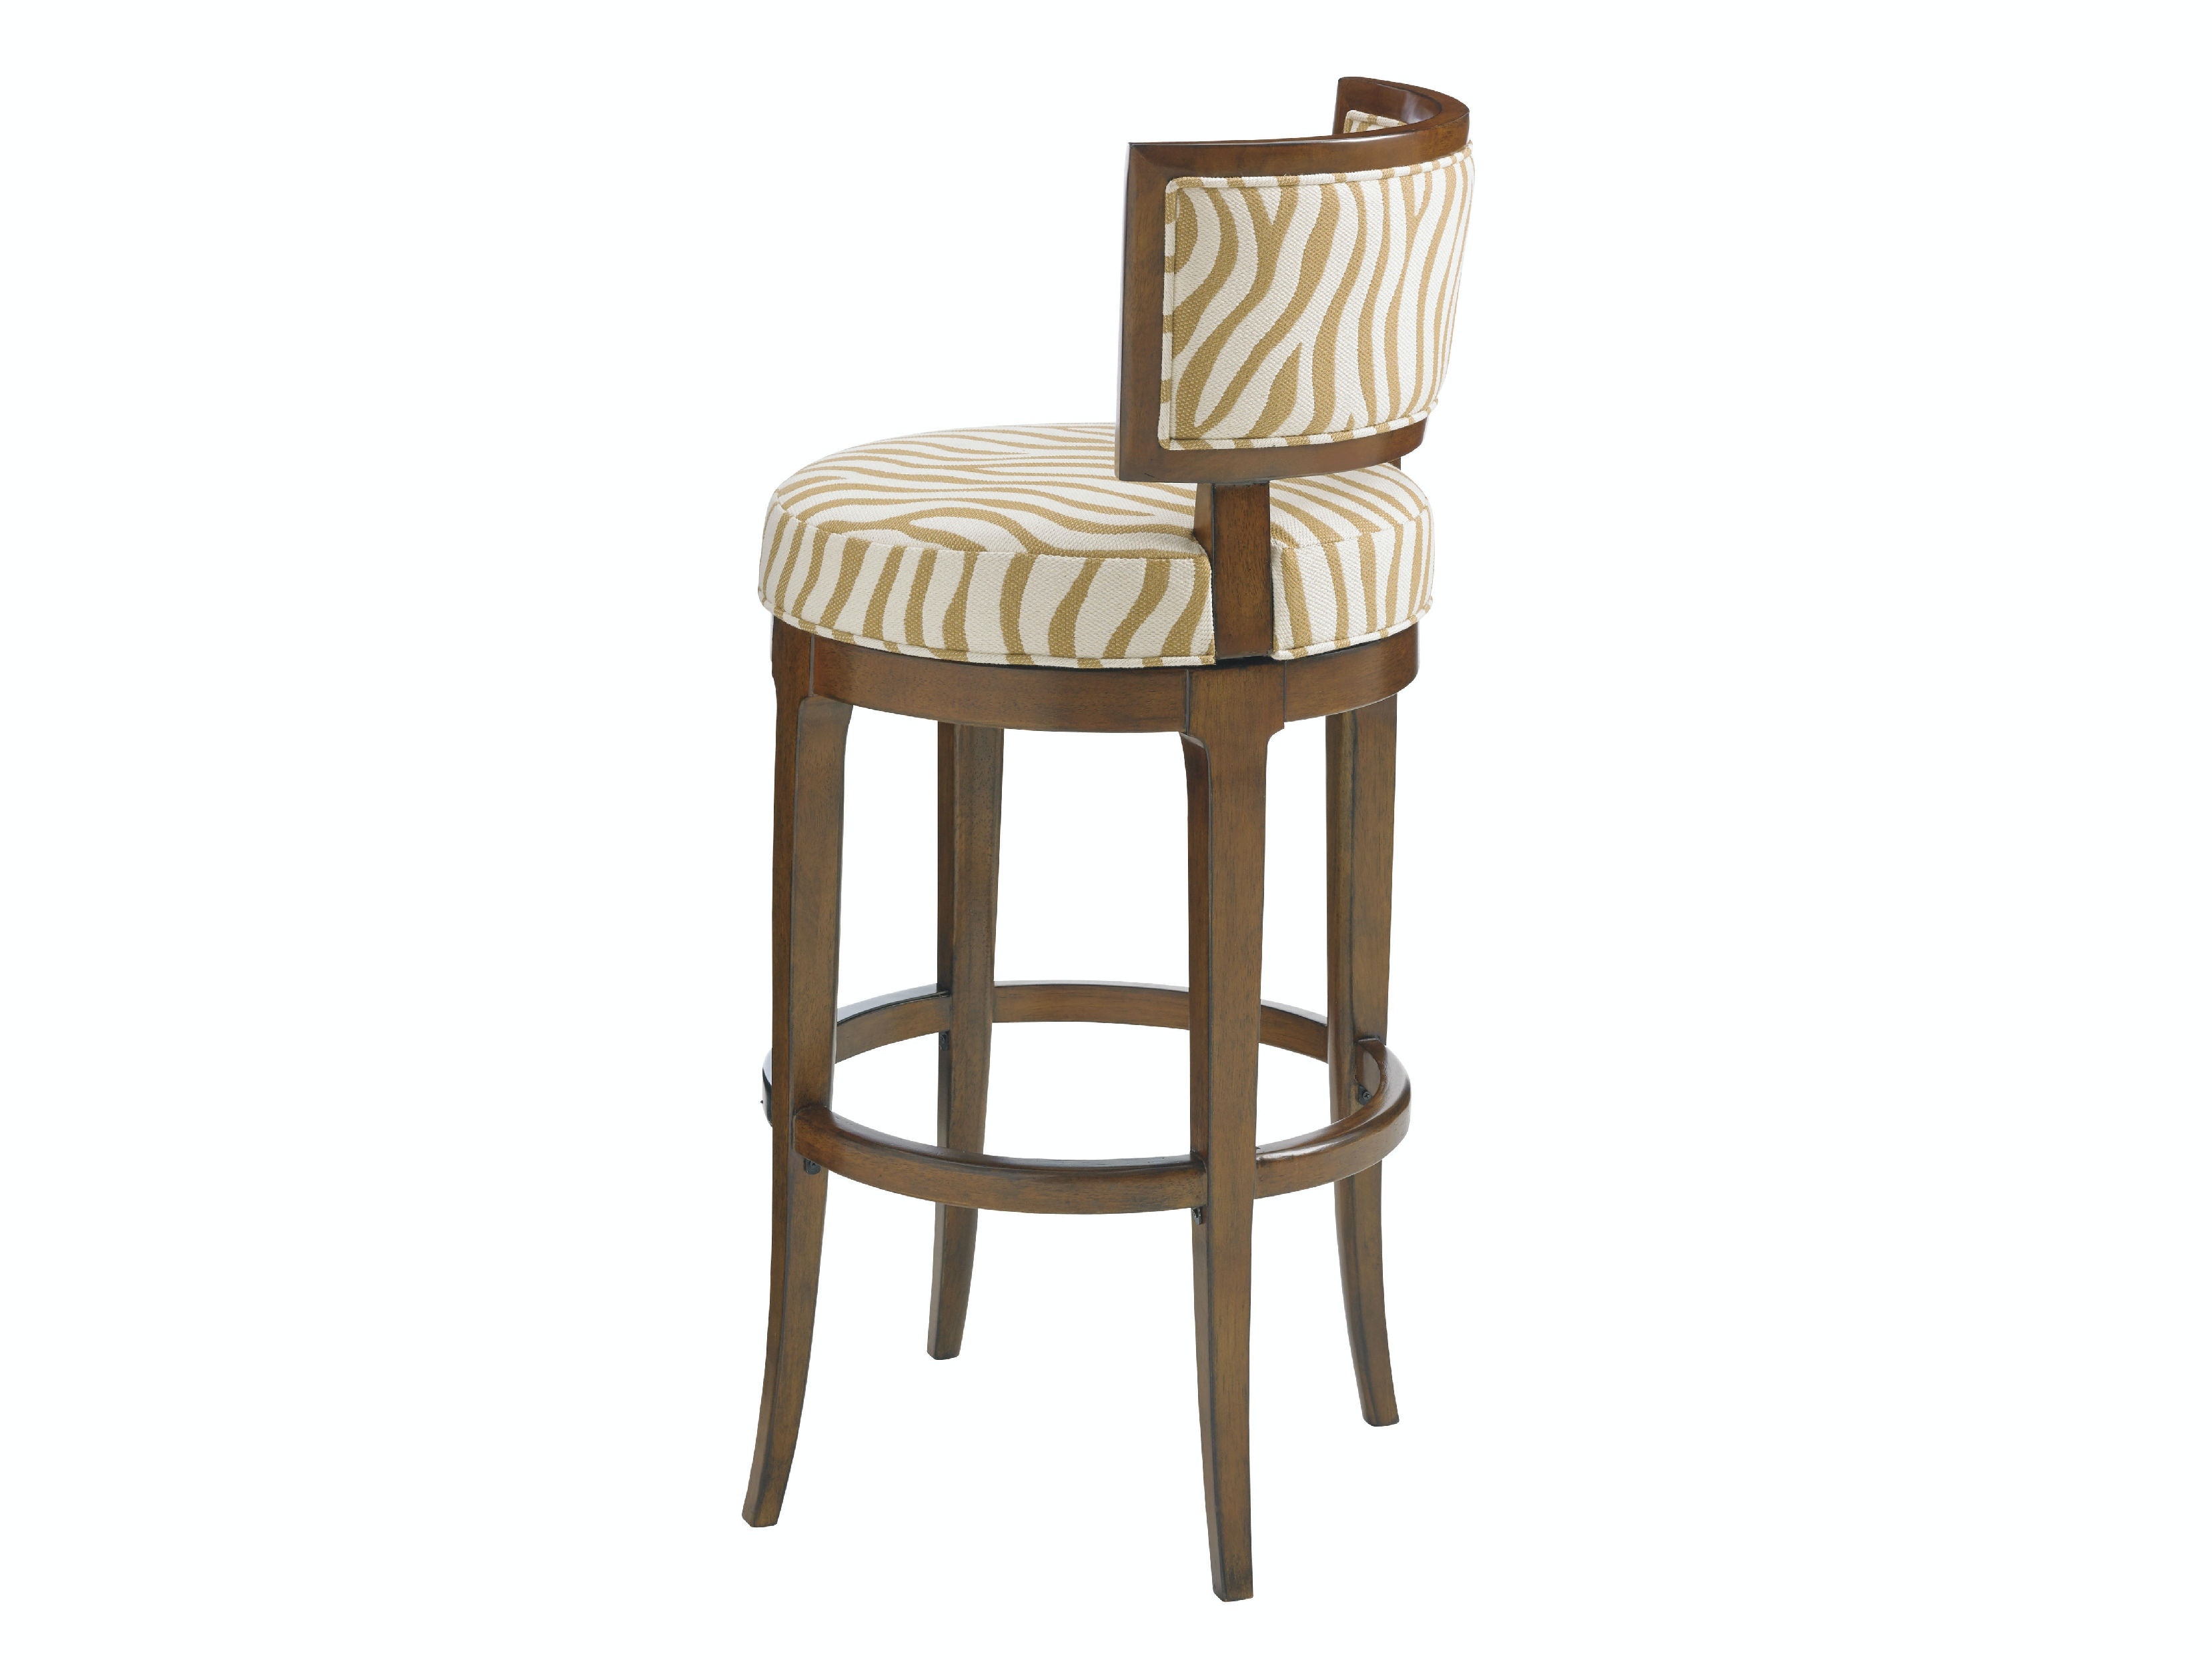 Tommy Bahama Home Bar And Game Room Macau Swivel Bar Stool 556 816 Louis Shanks Austin